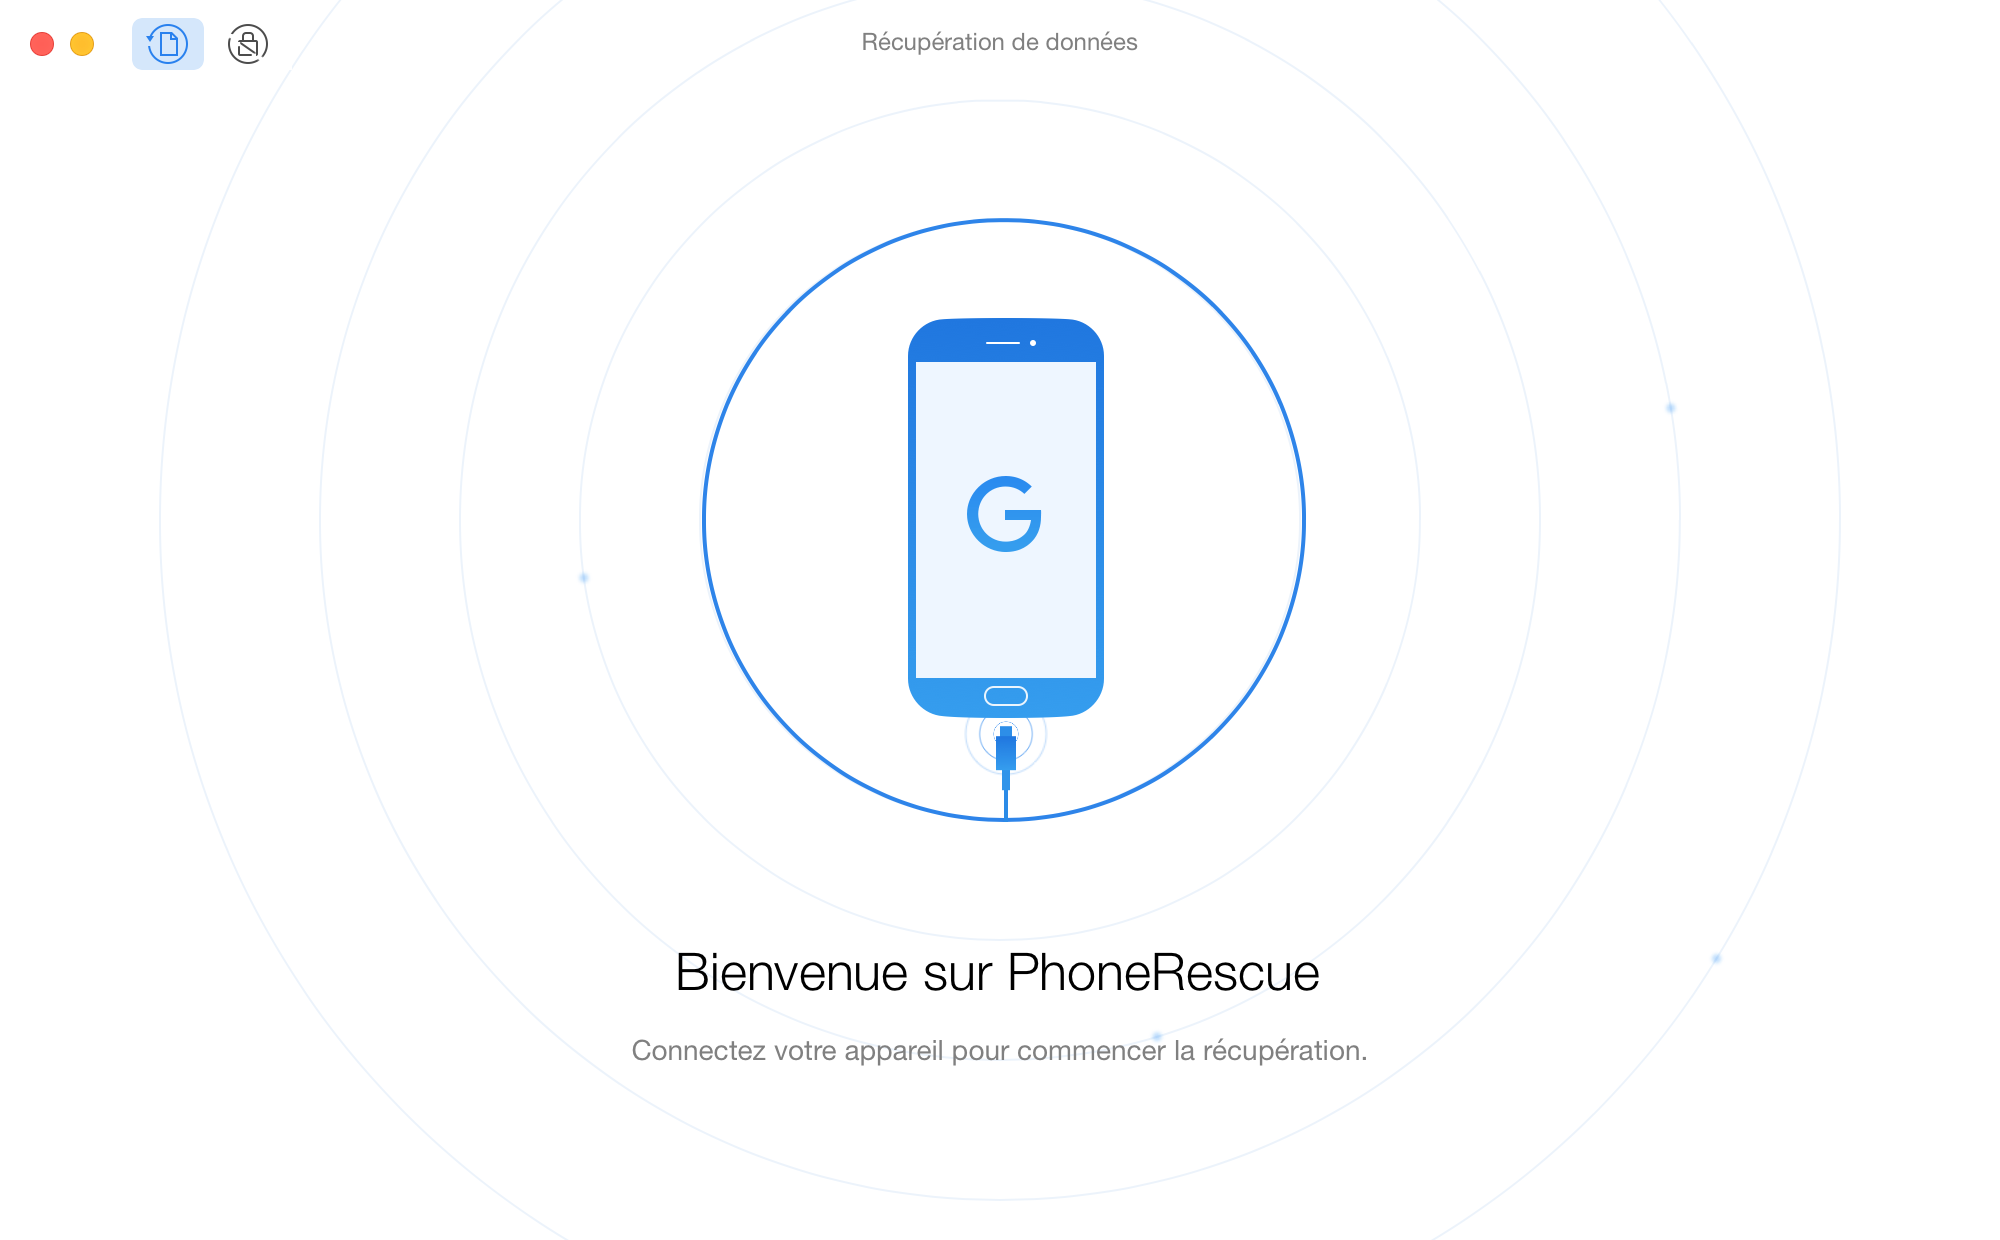 Interface d'accueil de PhoneRescue pour Google